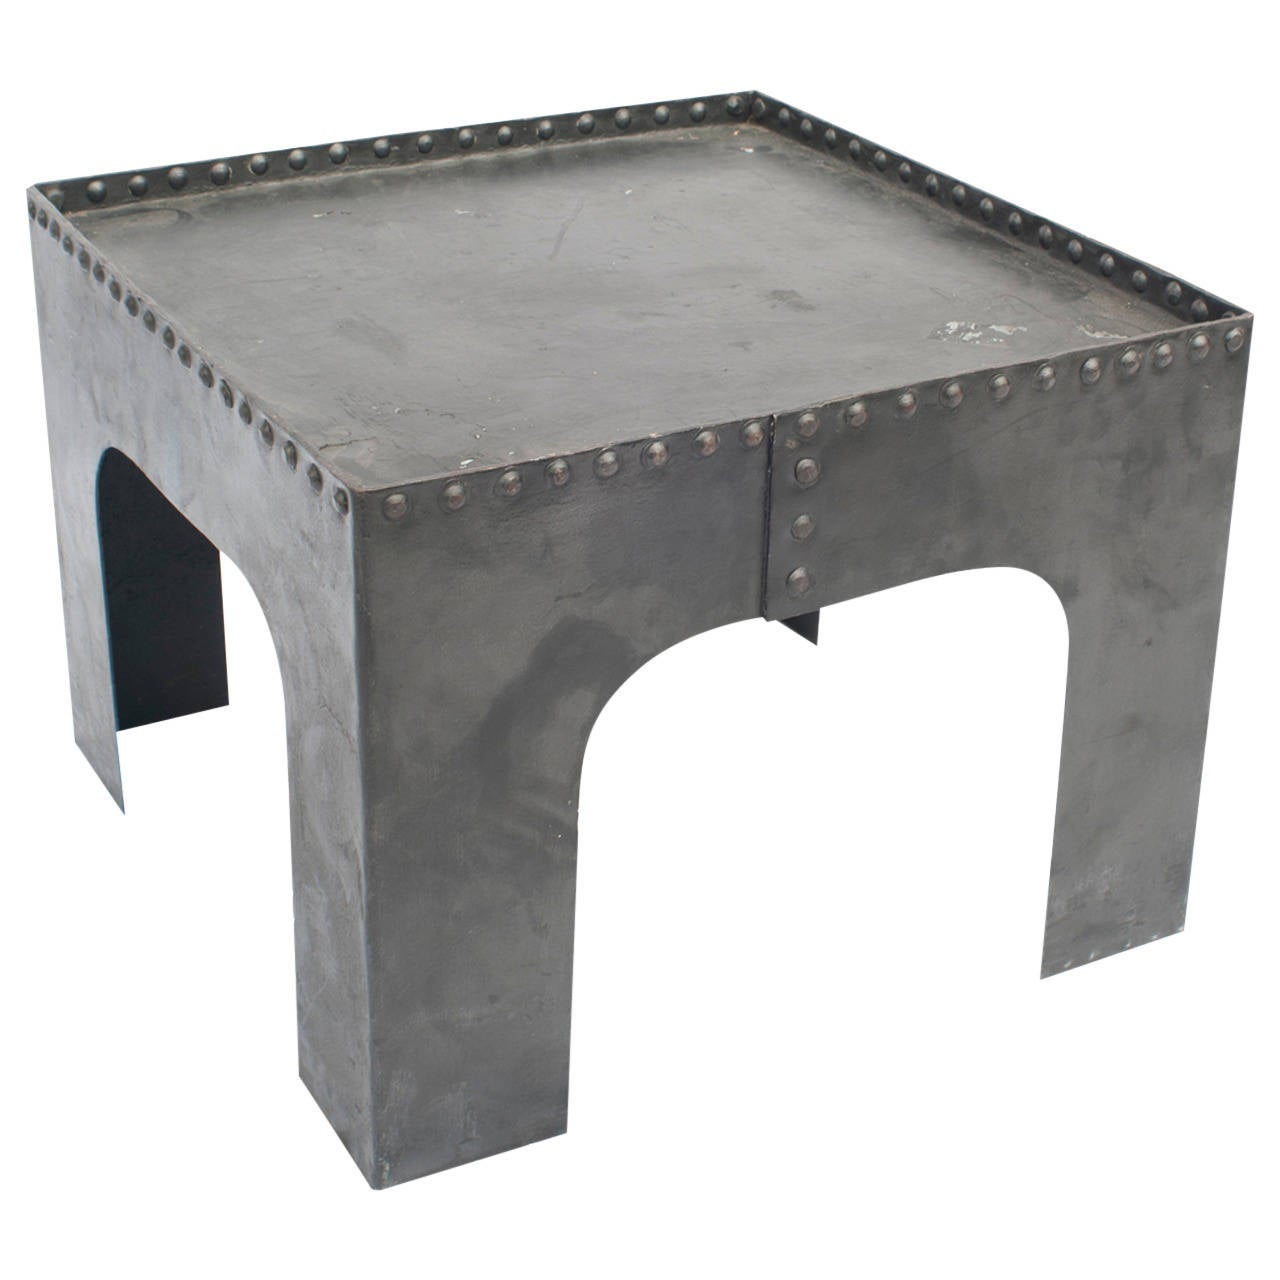 Small Industrial Side Table Small Square Industrial Metal Coffee Table For Sale At 1stdibs